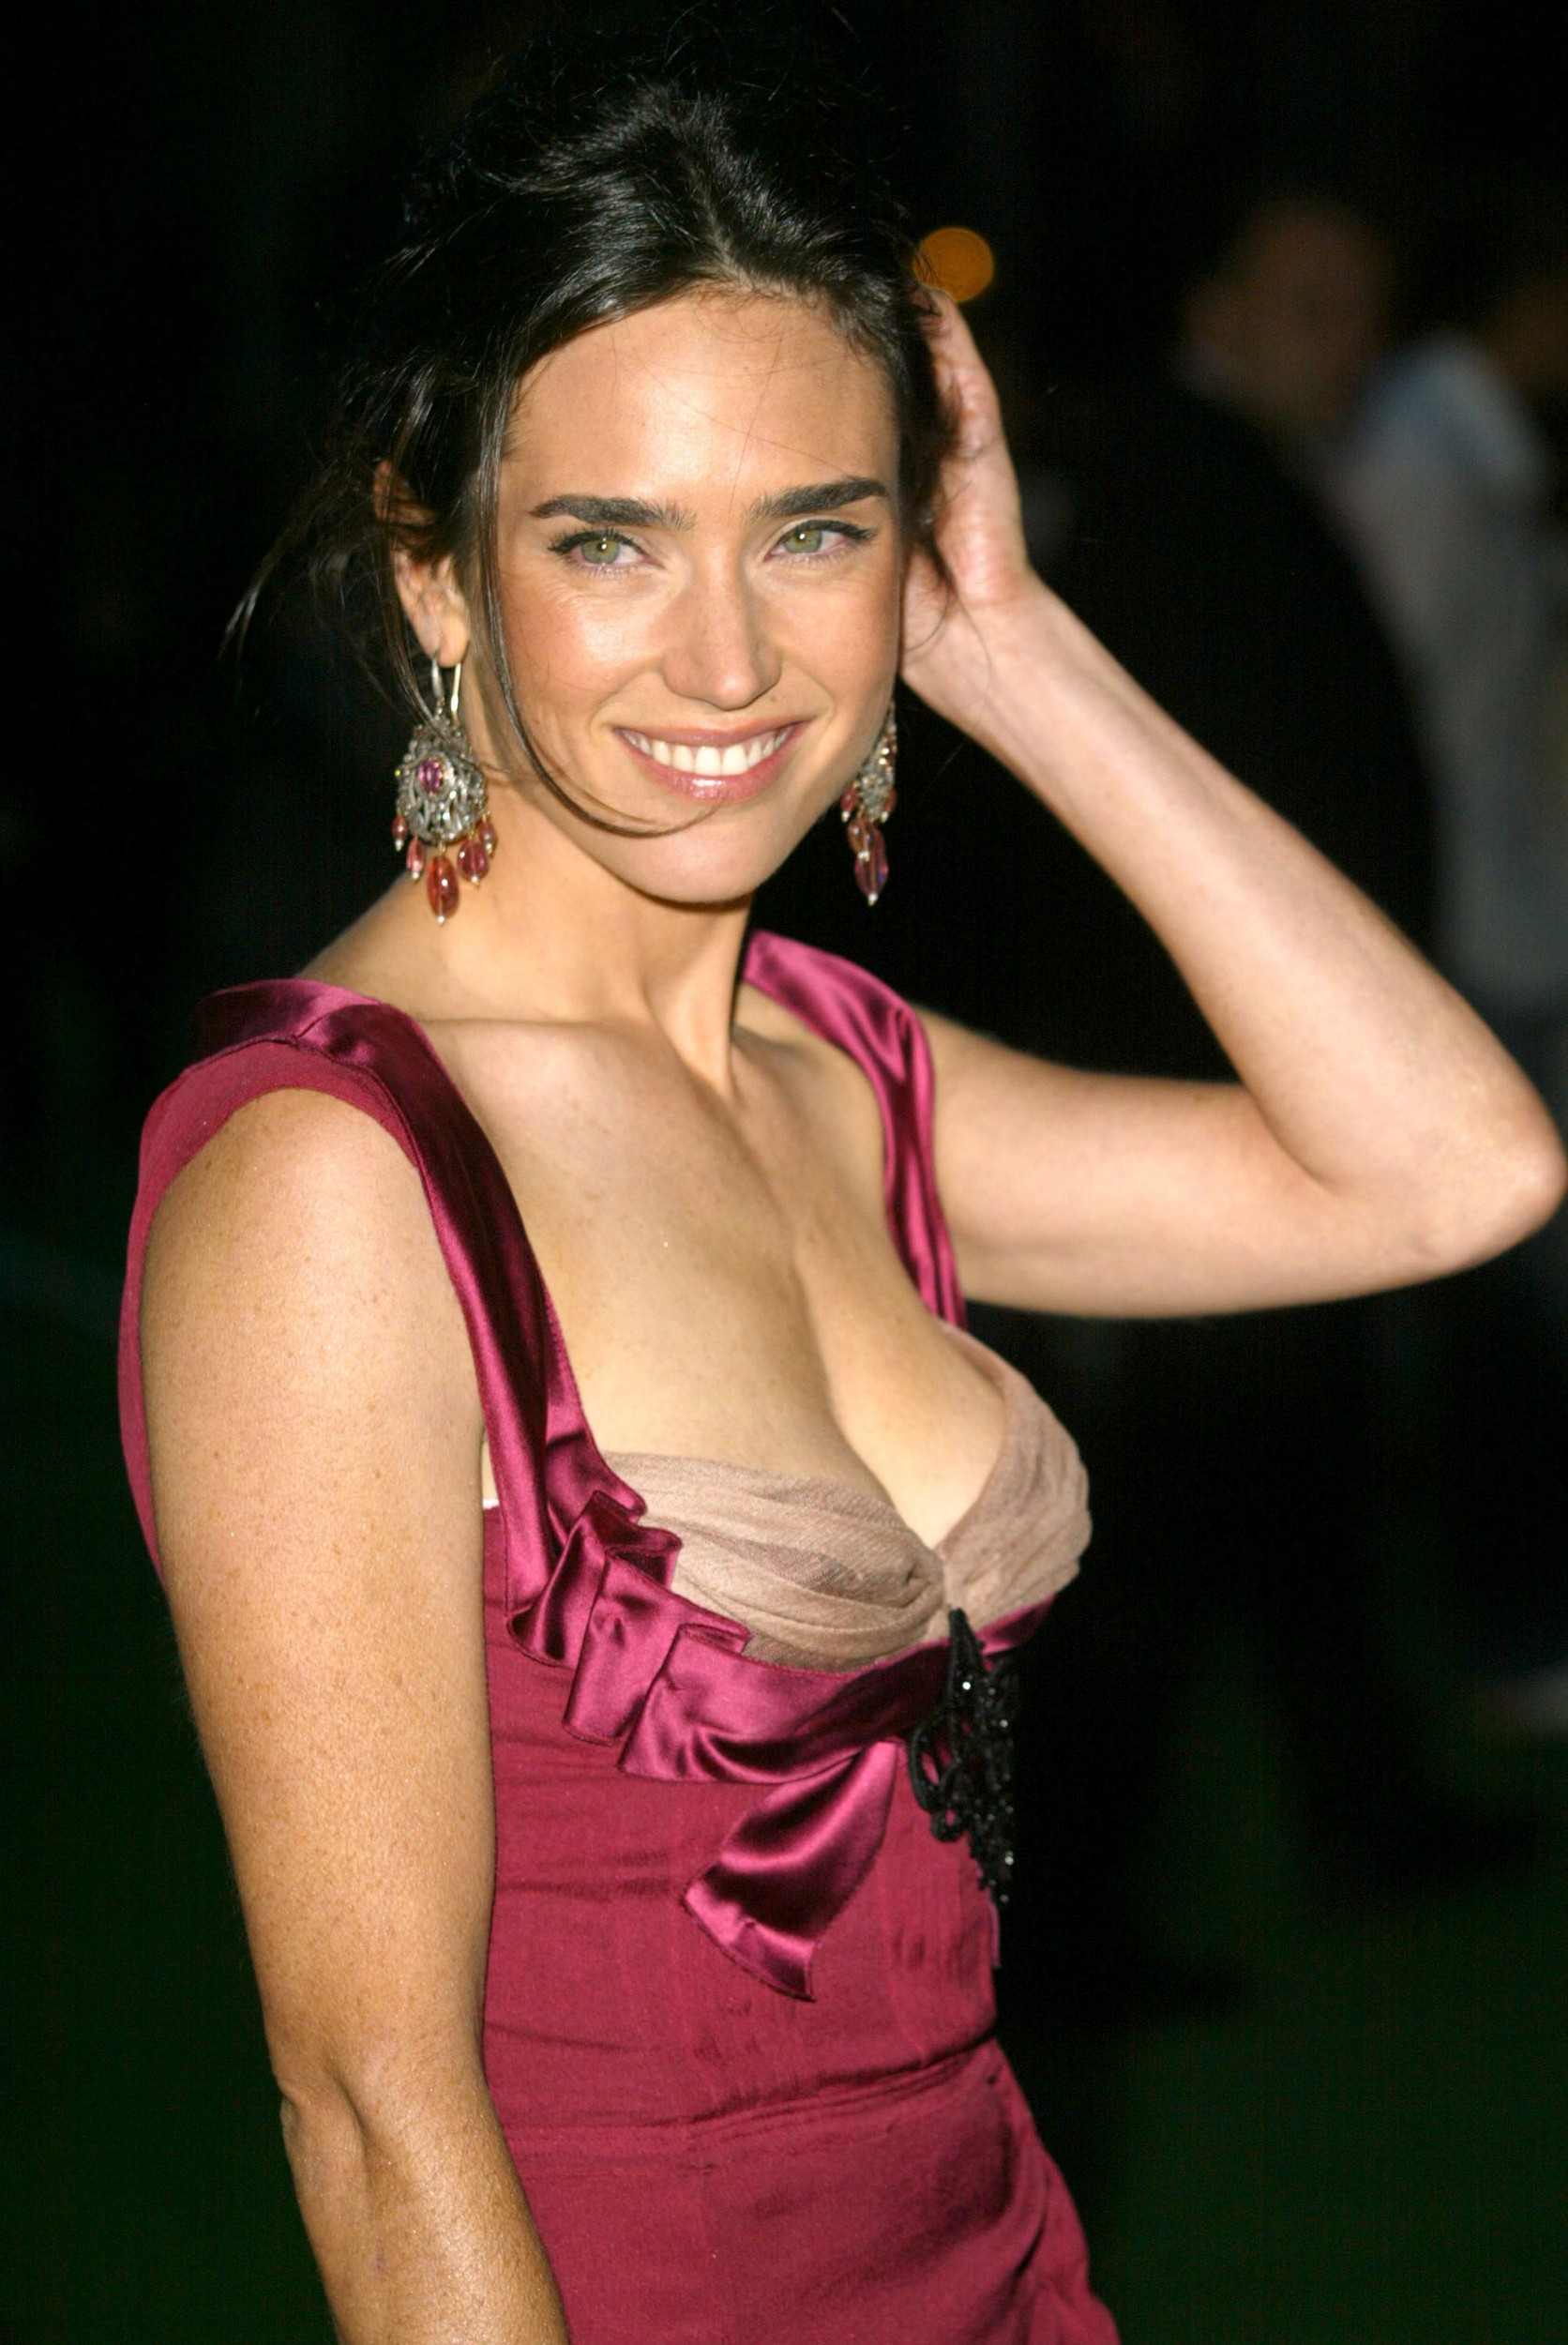 Handjob jennifer connelly dildo scene requiem